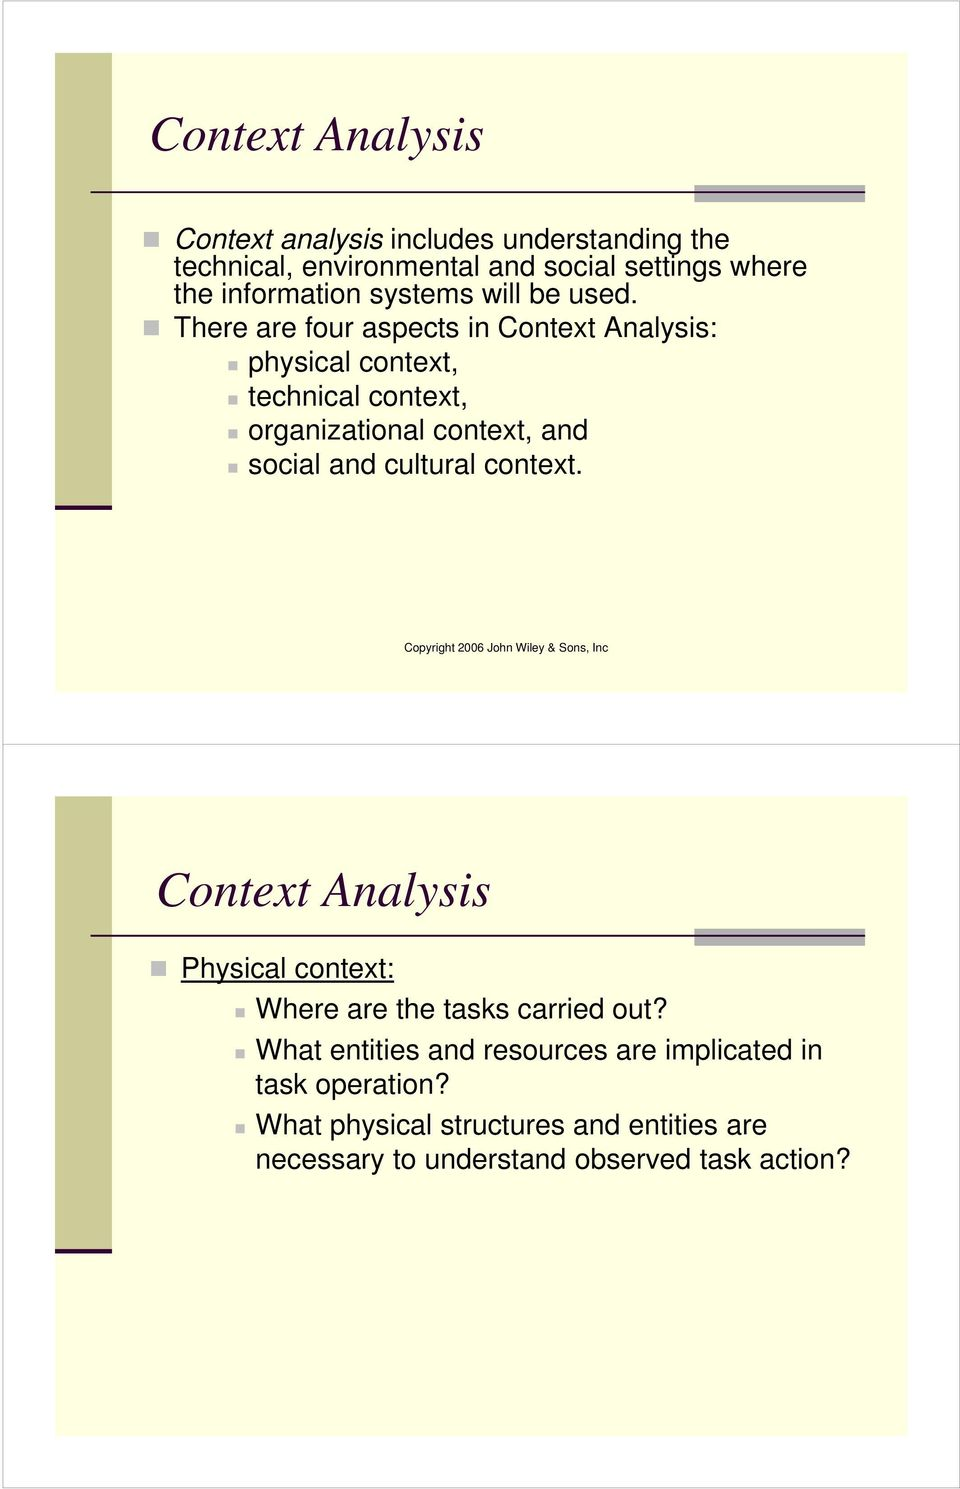 There are four aspects in Context Analysis: physical context, technical context, organizational context, and social and